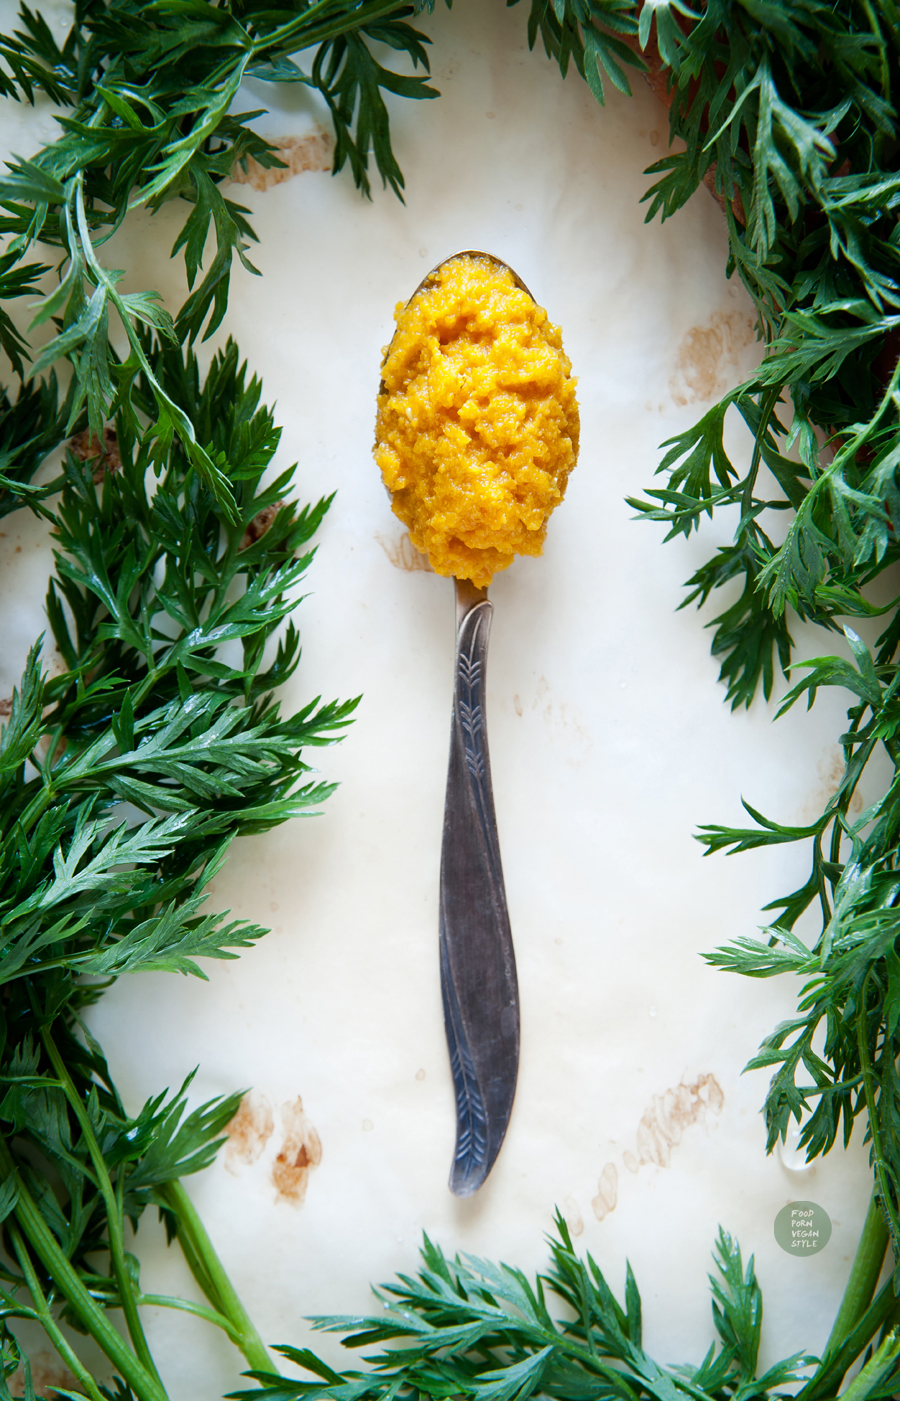 Carrot chutney with cumin, ginger and turmeric